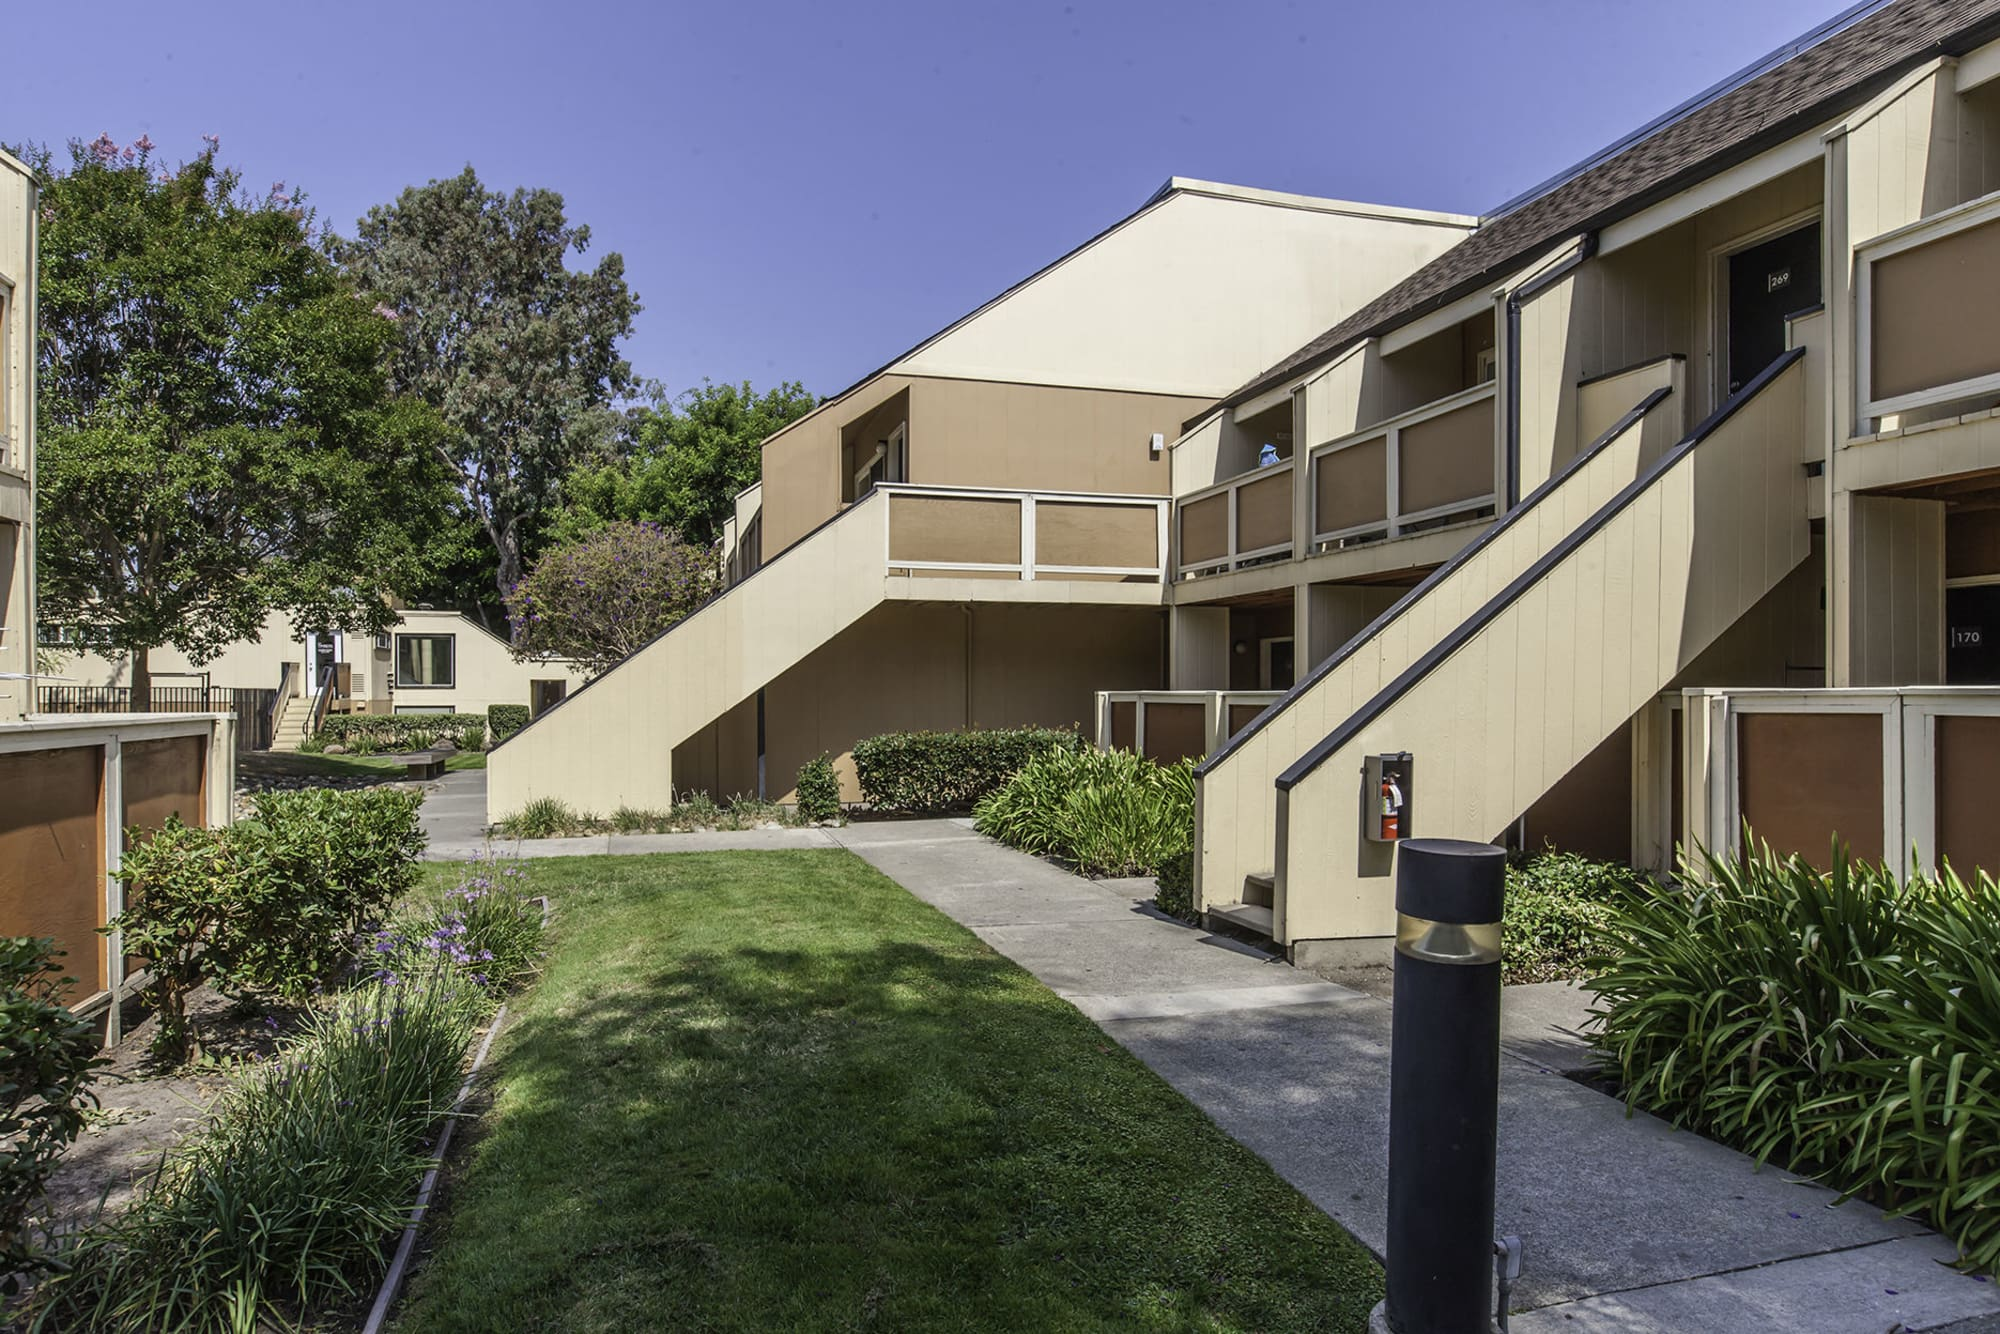 Apartments with walking paths atThe Timbers Apartments in Hayward, CA